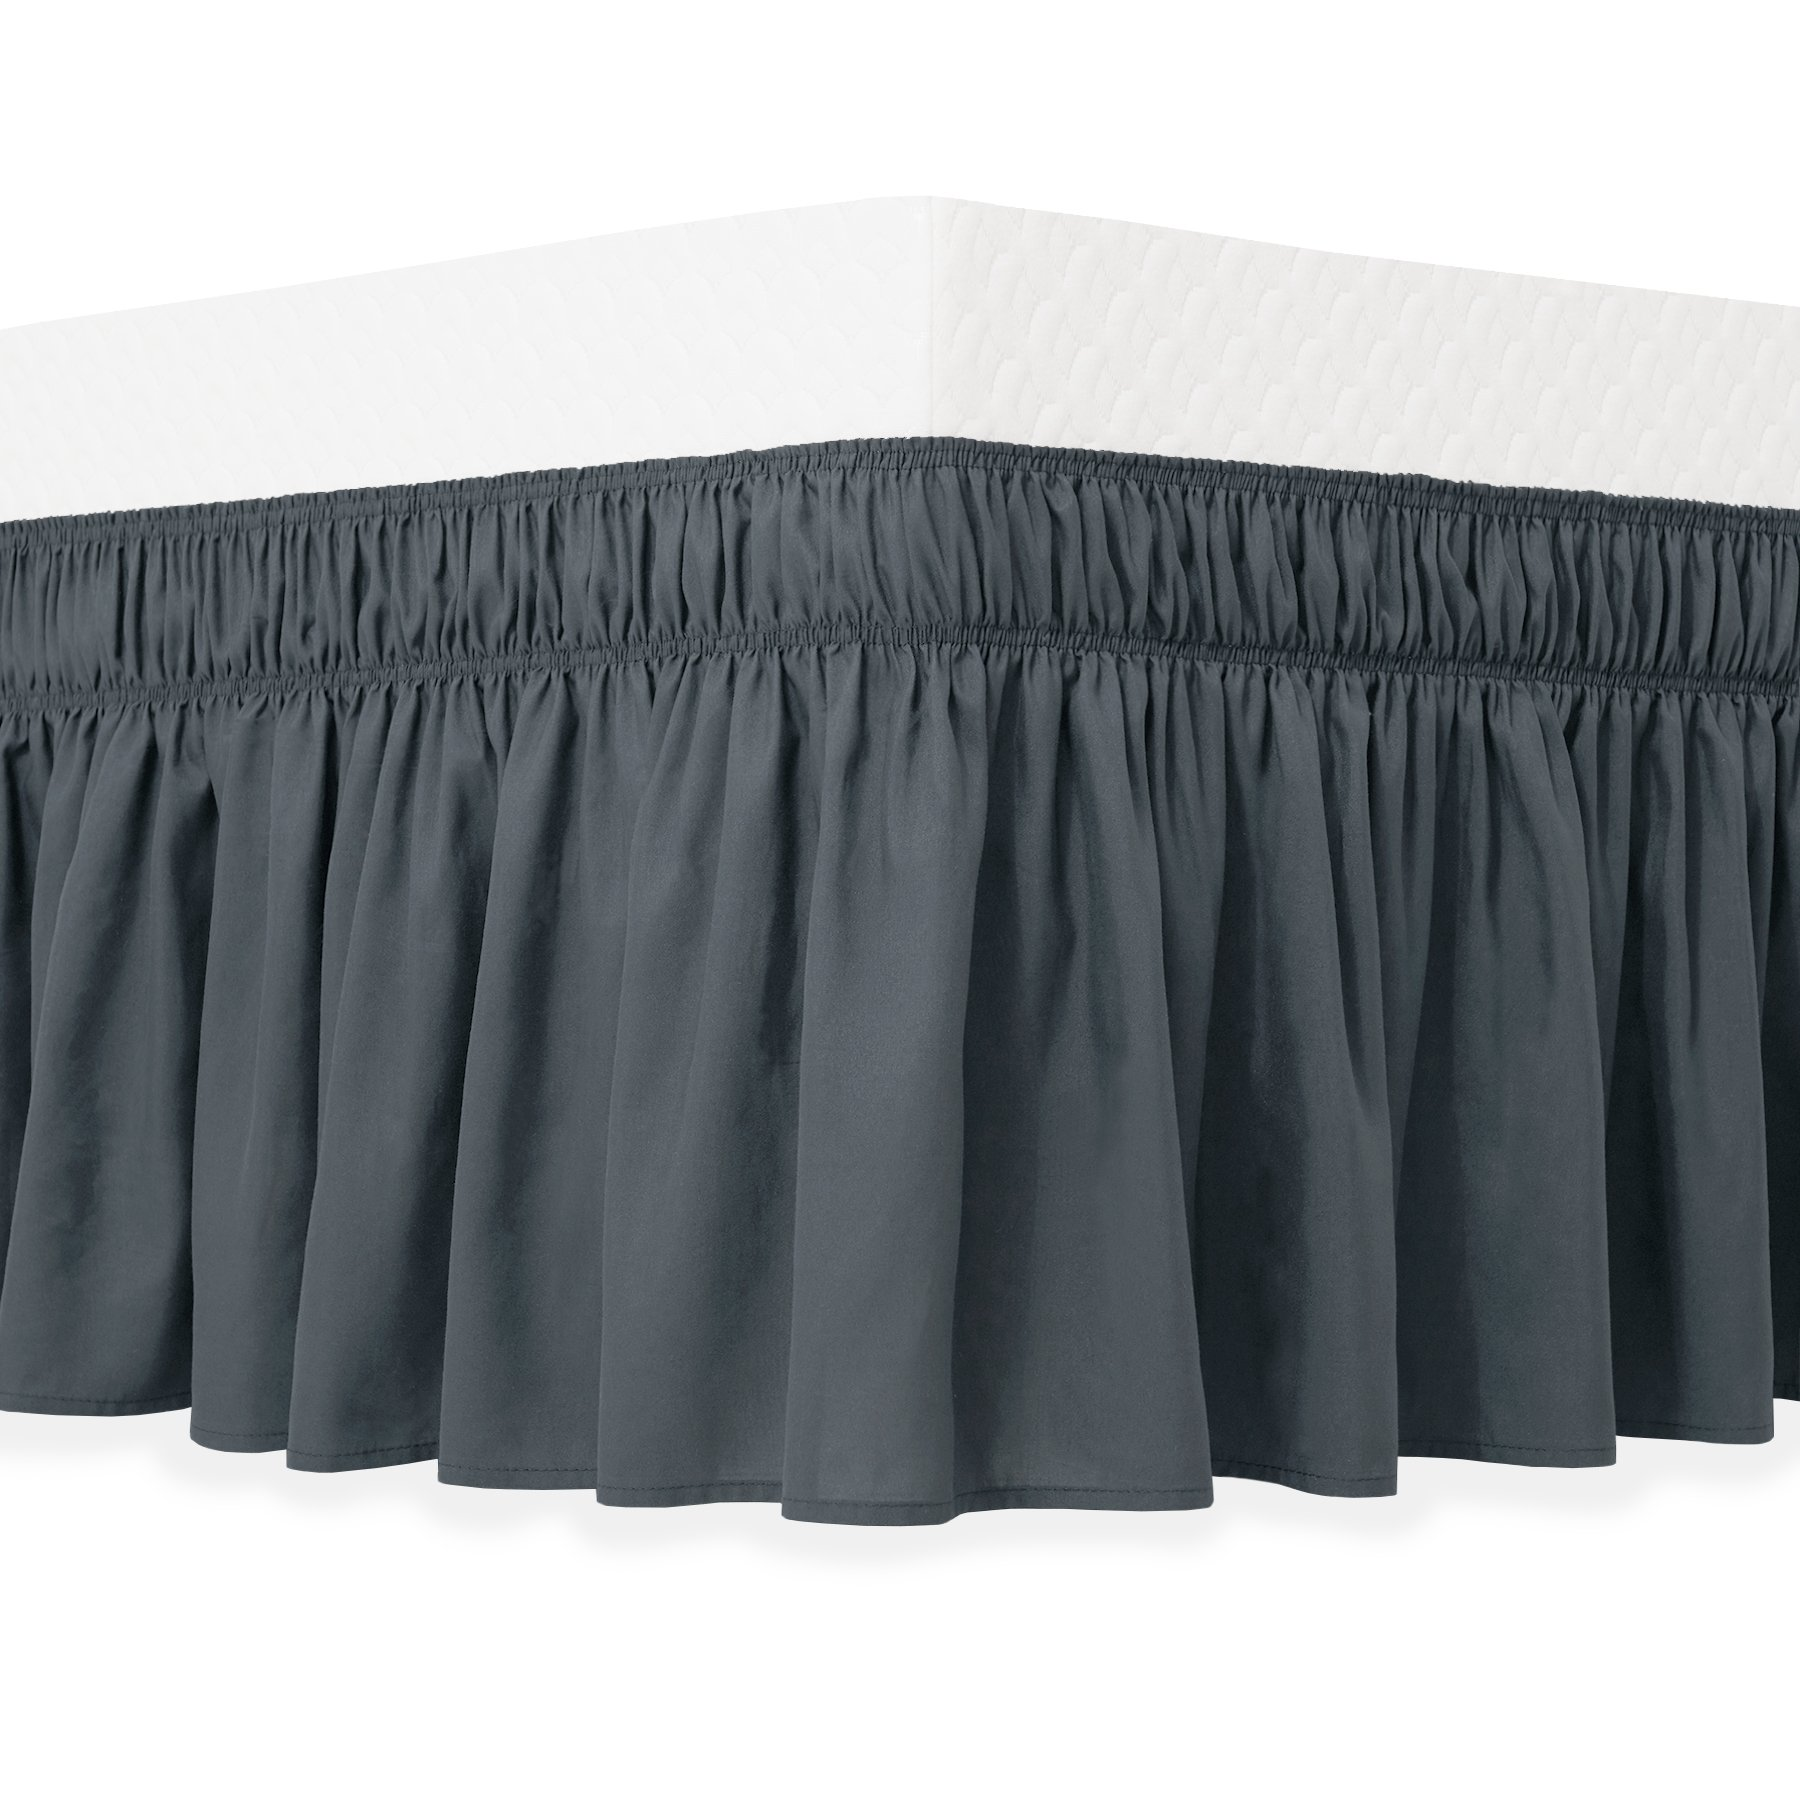 Guken Wrap Around Bed Skirt Elastic Soft Ruffled Bed Skirt Easy On and Easy Off (Queen, Gray)